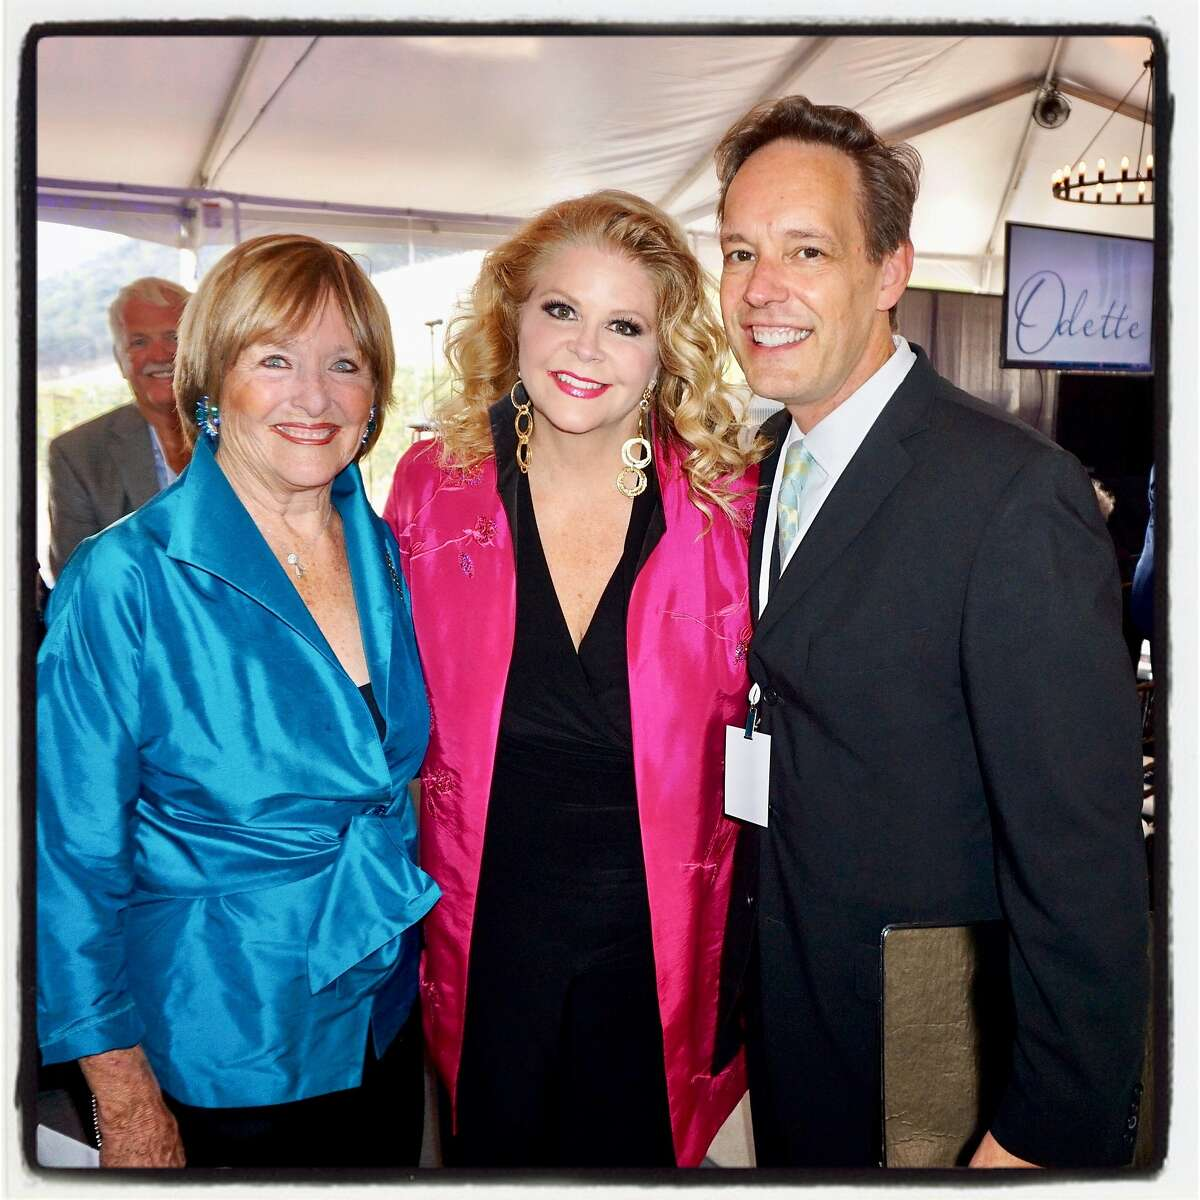 Opera singers Frederica von Stade and Susan Graham (at left) with composer Jake Heggie at Odette Winery for the Arts+Earth Initiative fundraiser. Sept. 16, 2017.